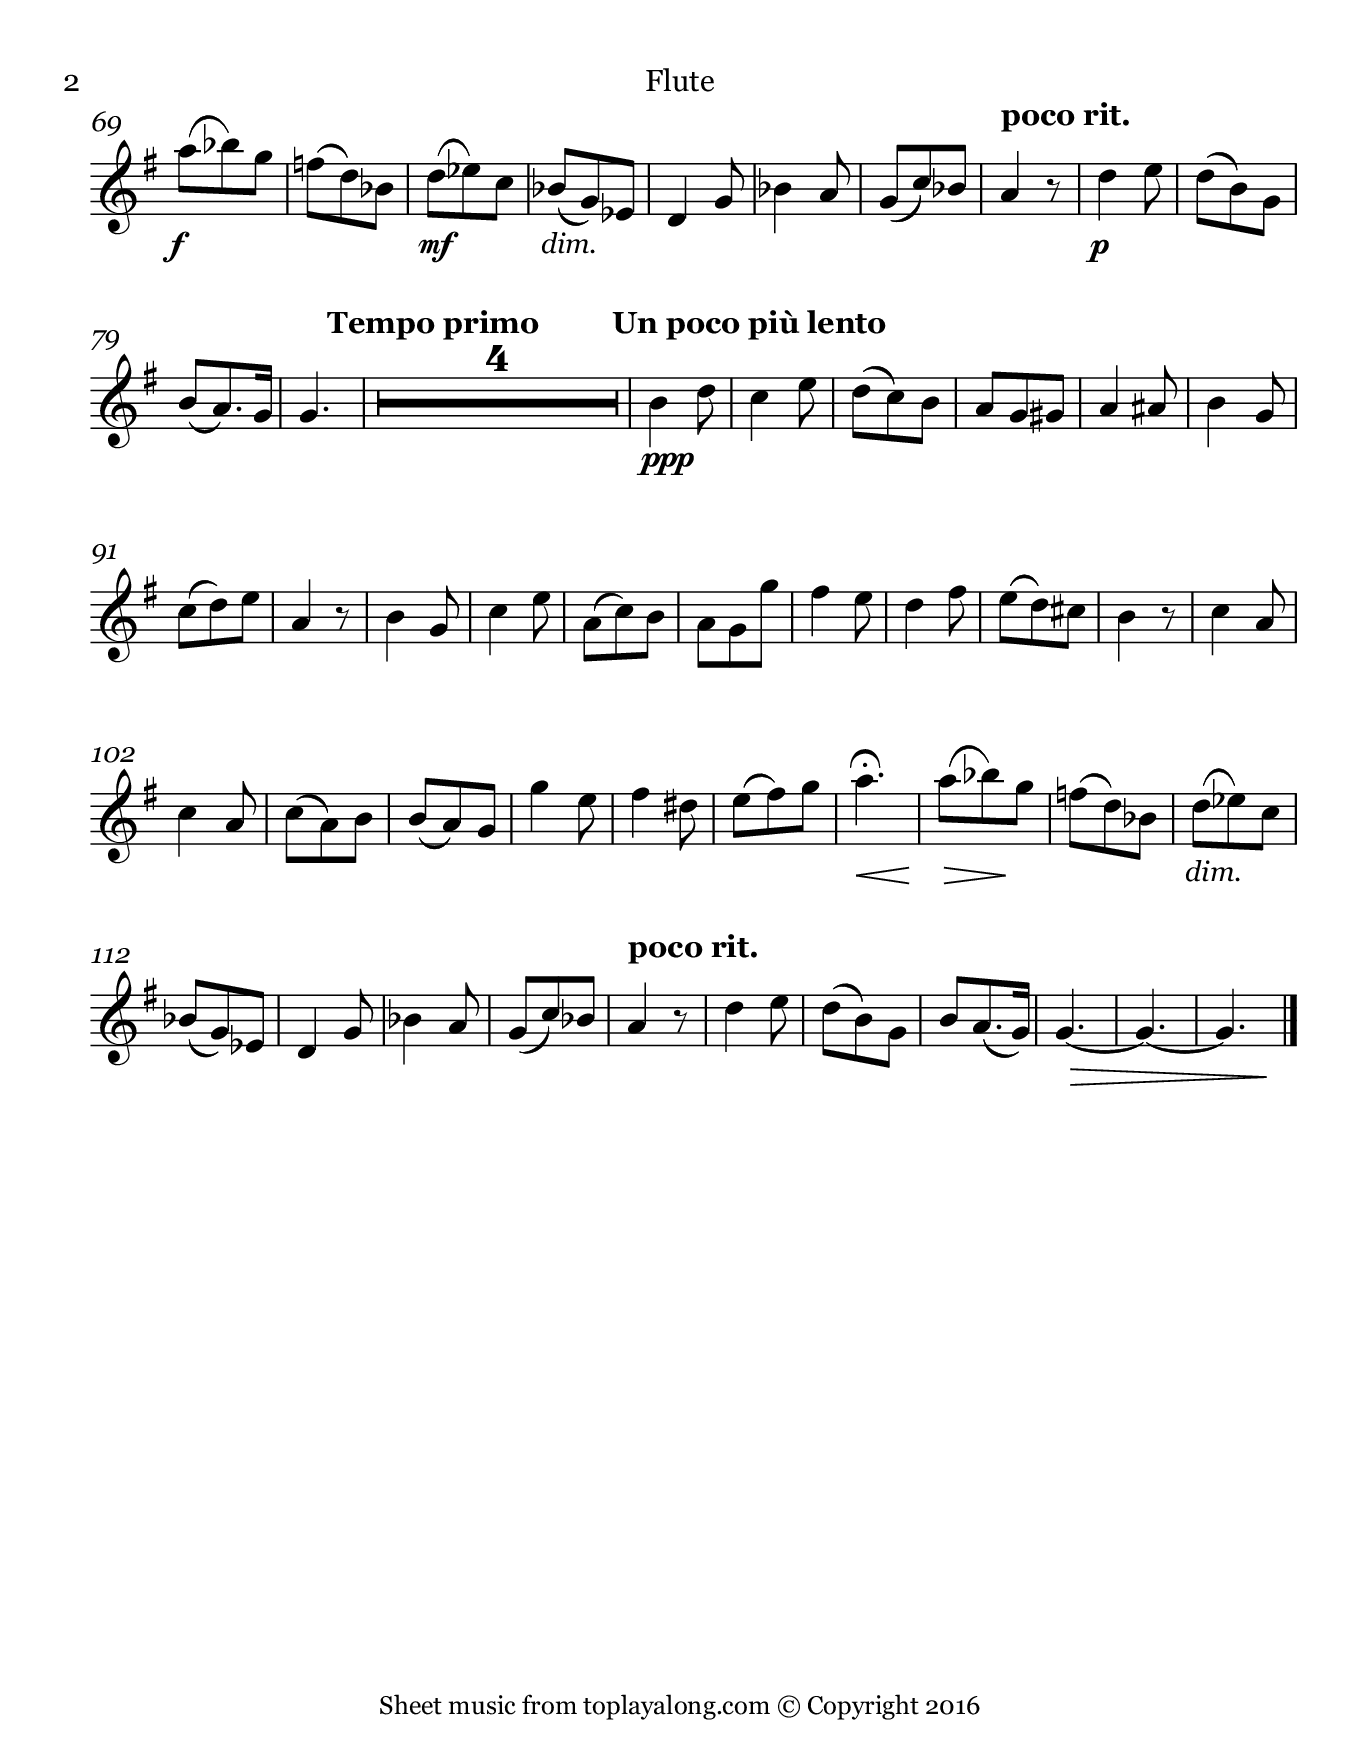 L'adieu des bergers from L'enfance du Christ by Berlioz. Sheet music for Flute, page 2.